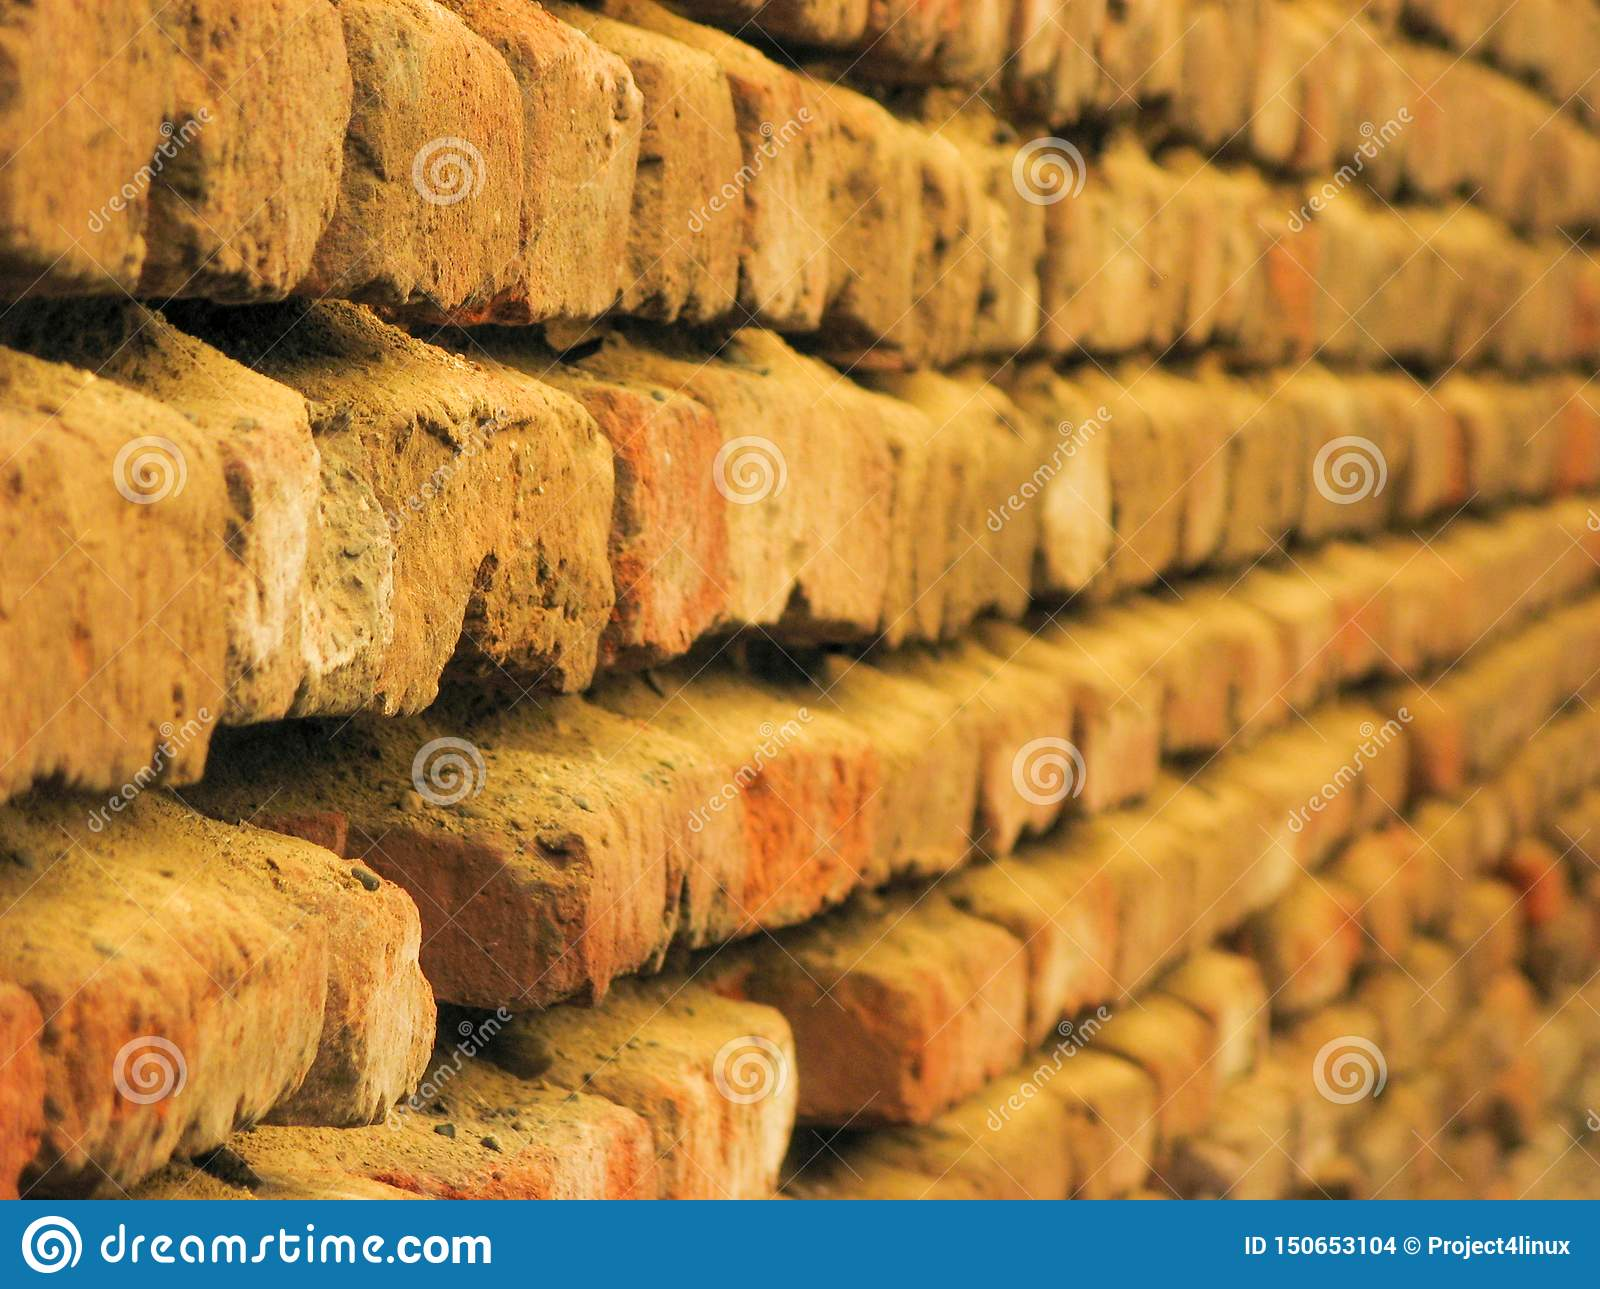 Old red brick wall texture background.Empty Old Wall Texture. Horizontal view